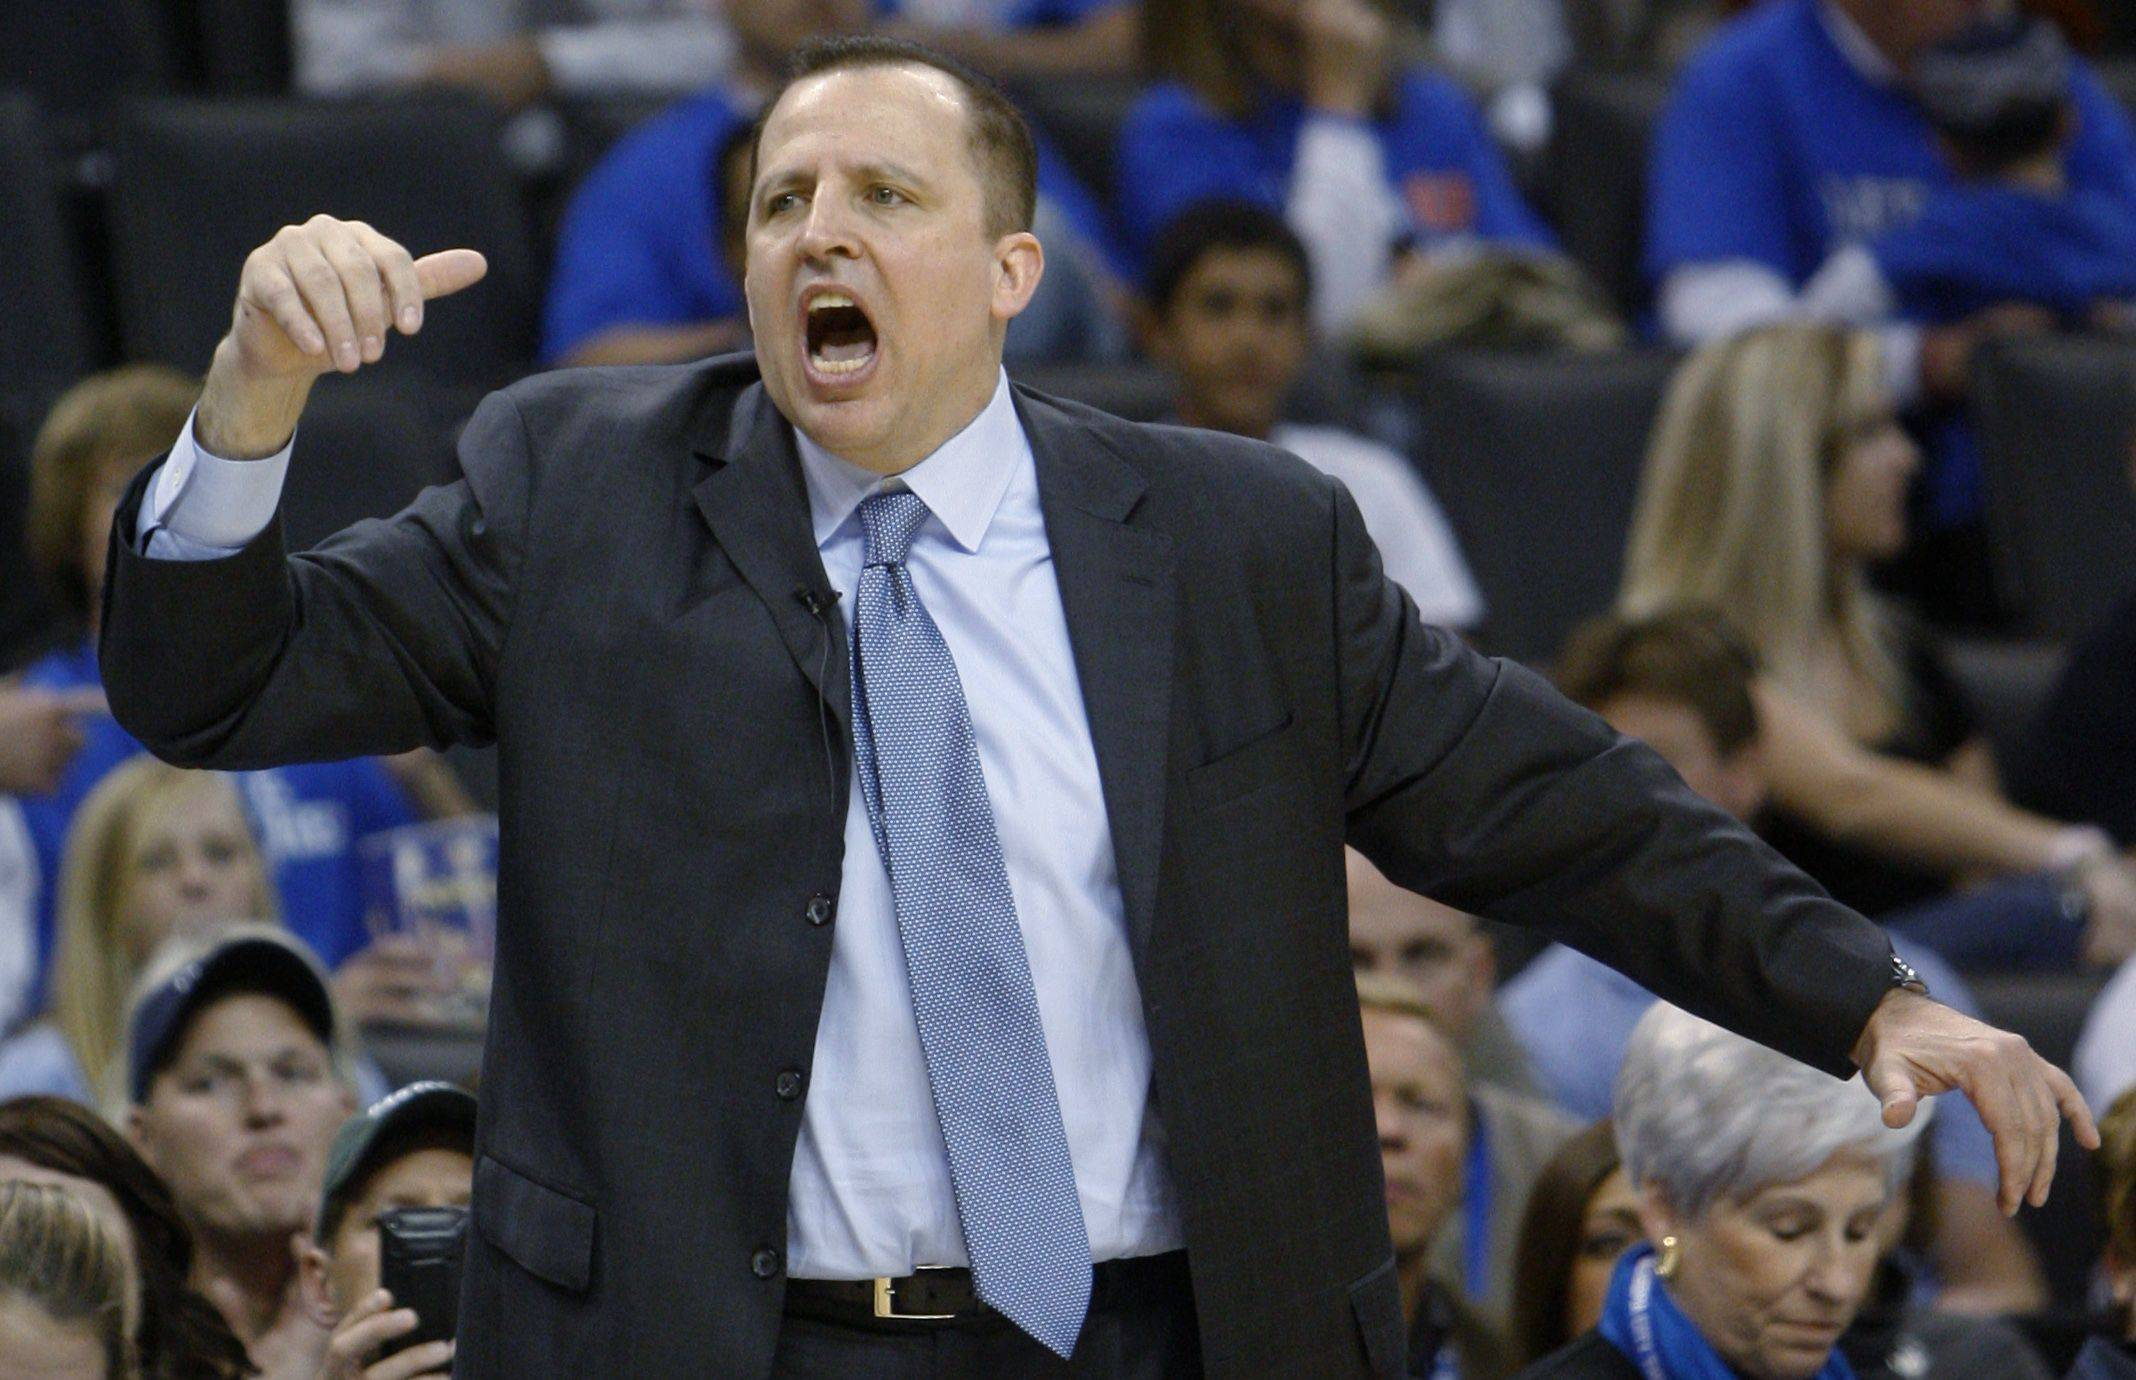 Chicago Bulls coach Tom Thibodeau shouts to his team during a game against the Oklahoma City Thunder.